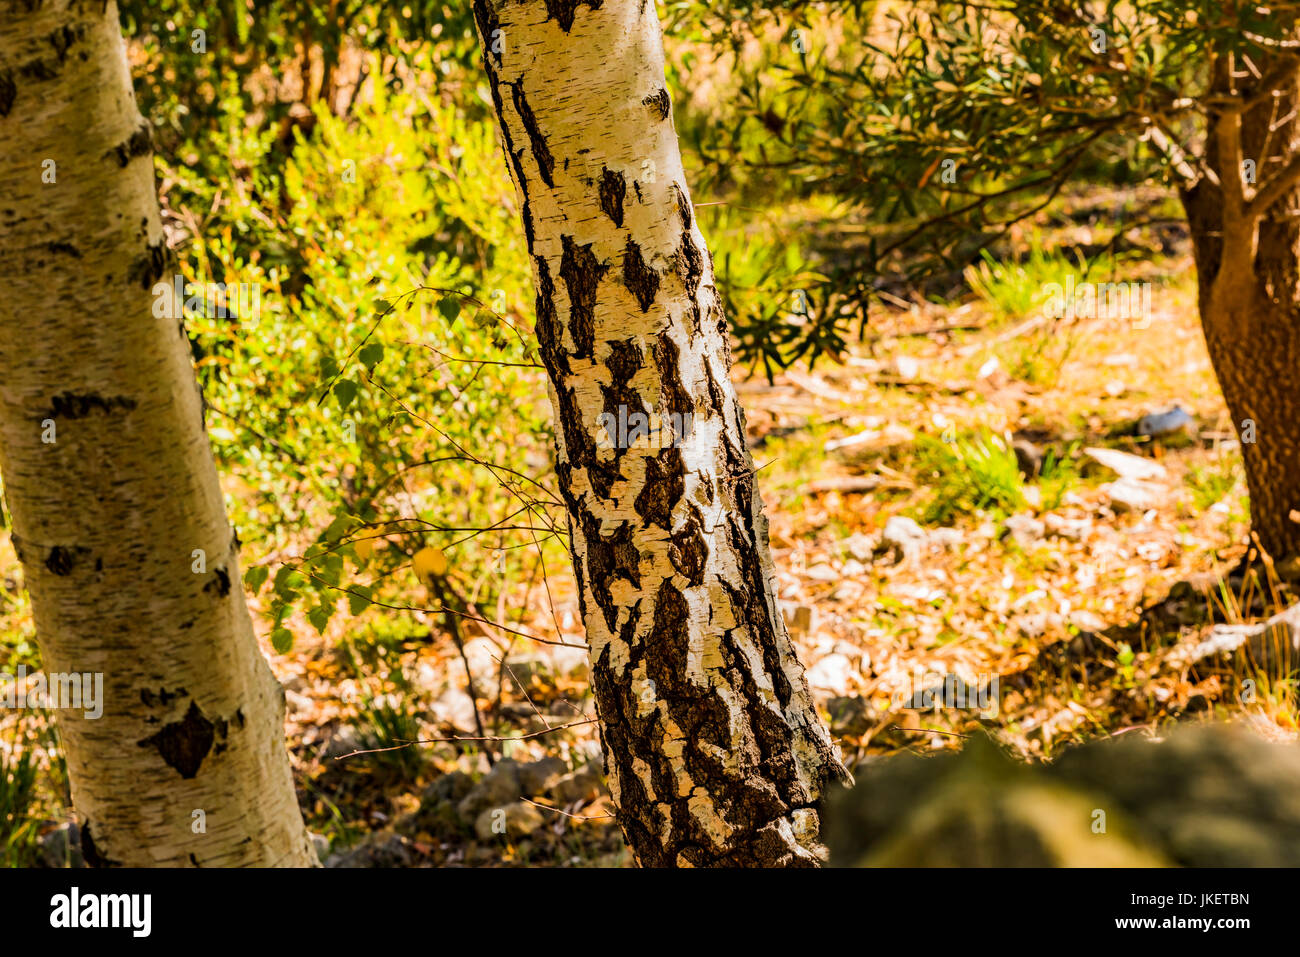 Silver Banksia Tree with its distinctive bark in the Mount Lofty National Park, South Australia - Stock Image